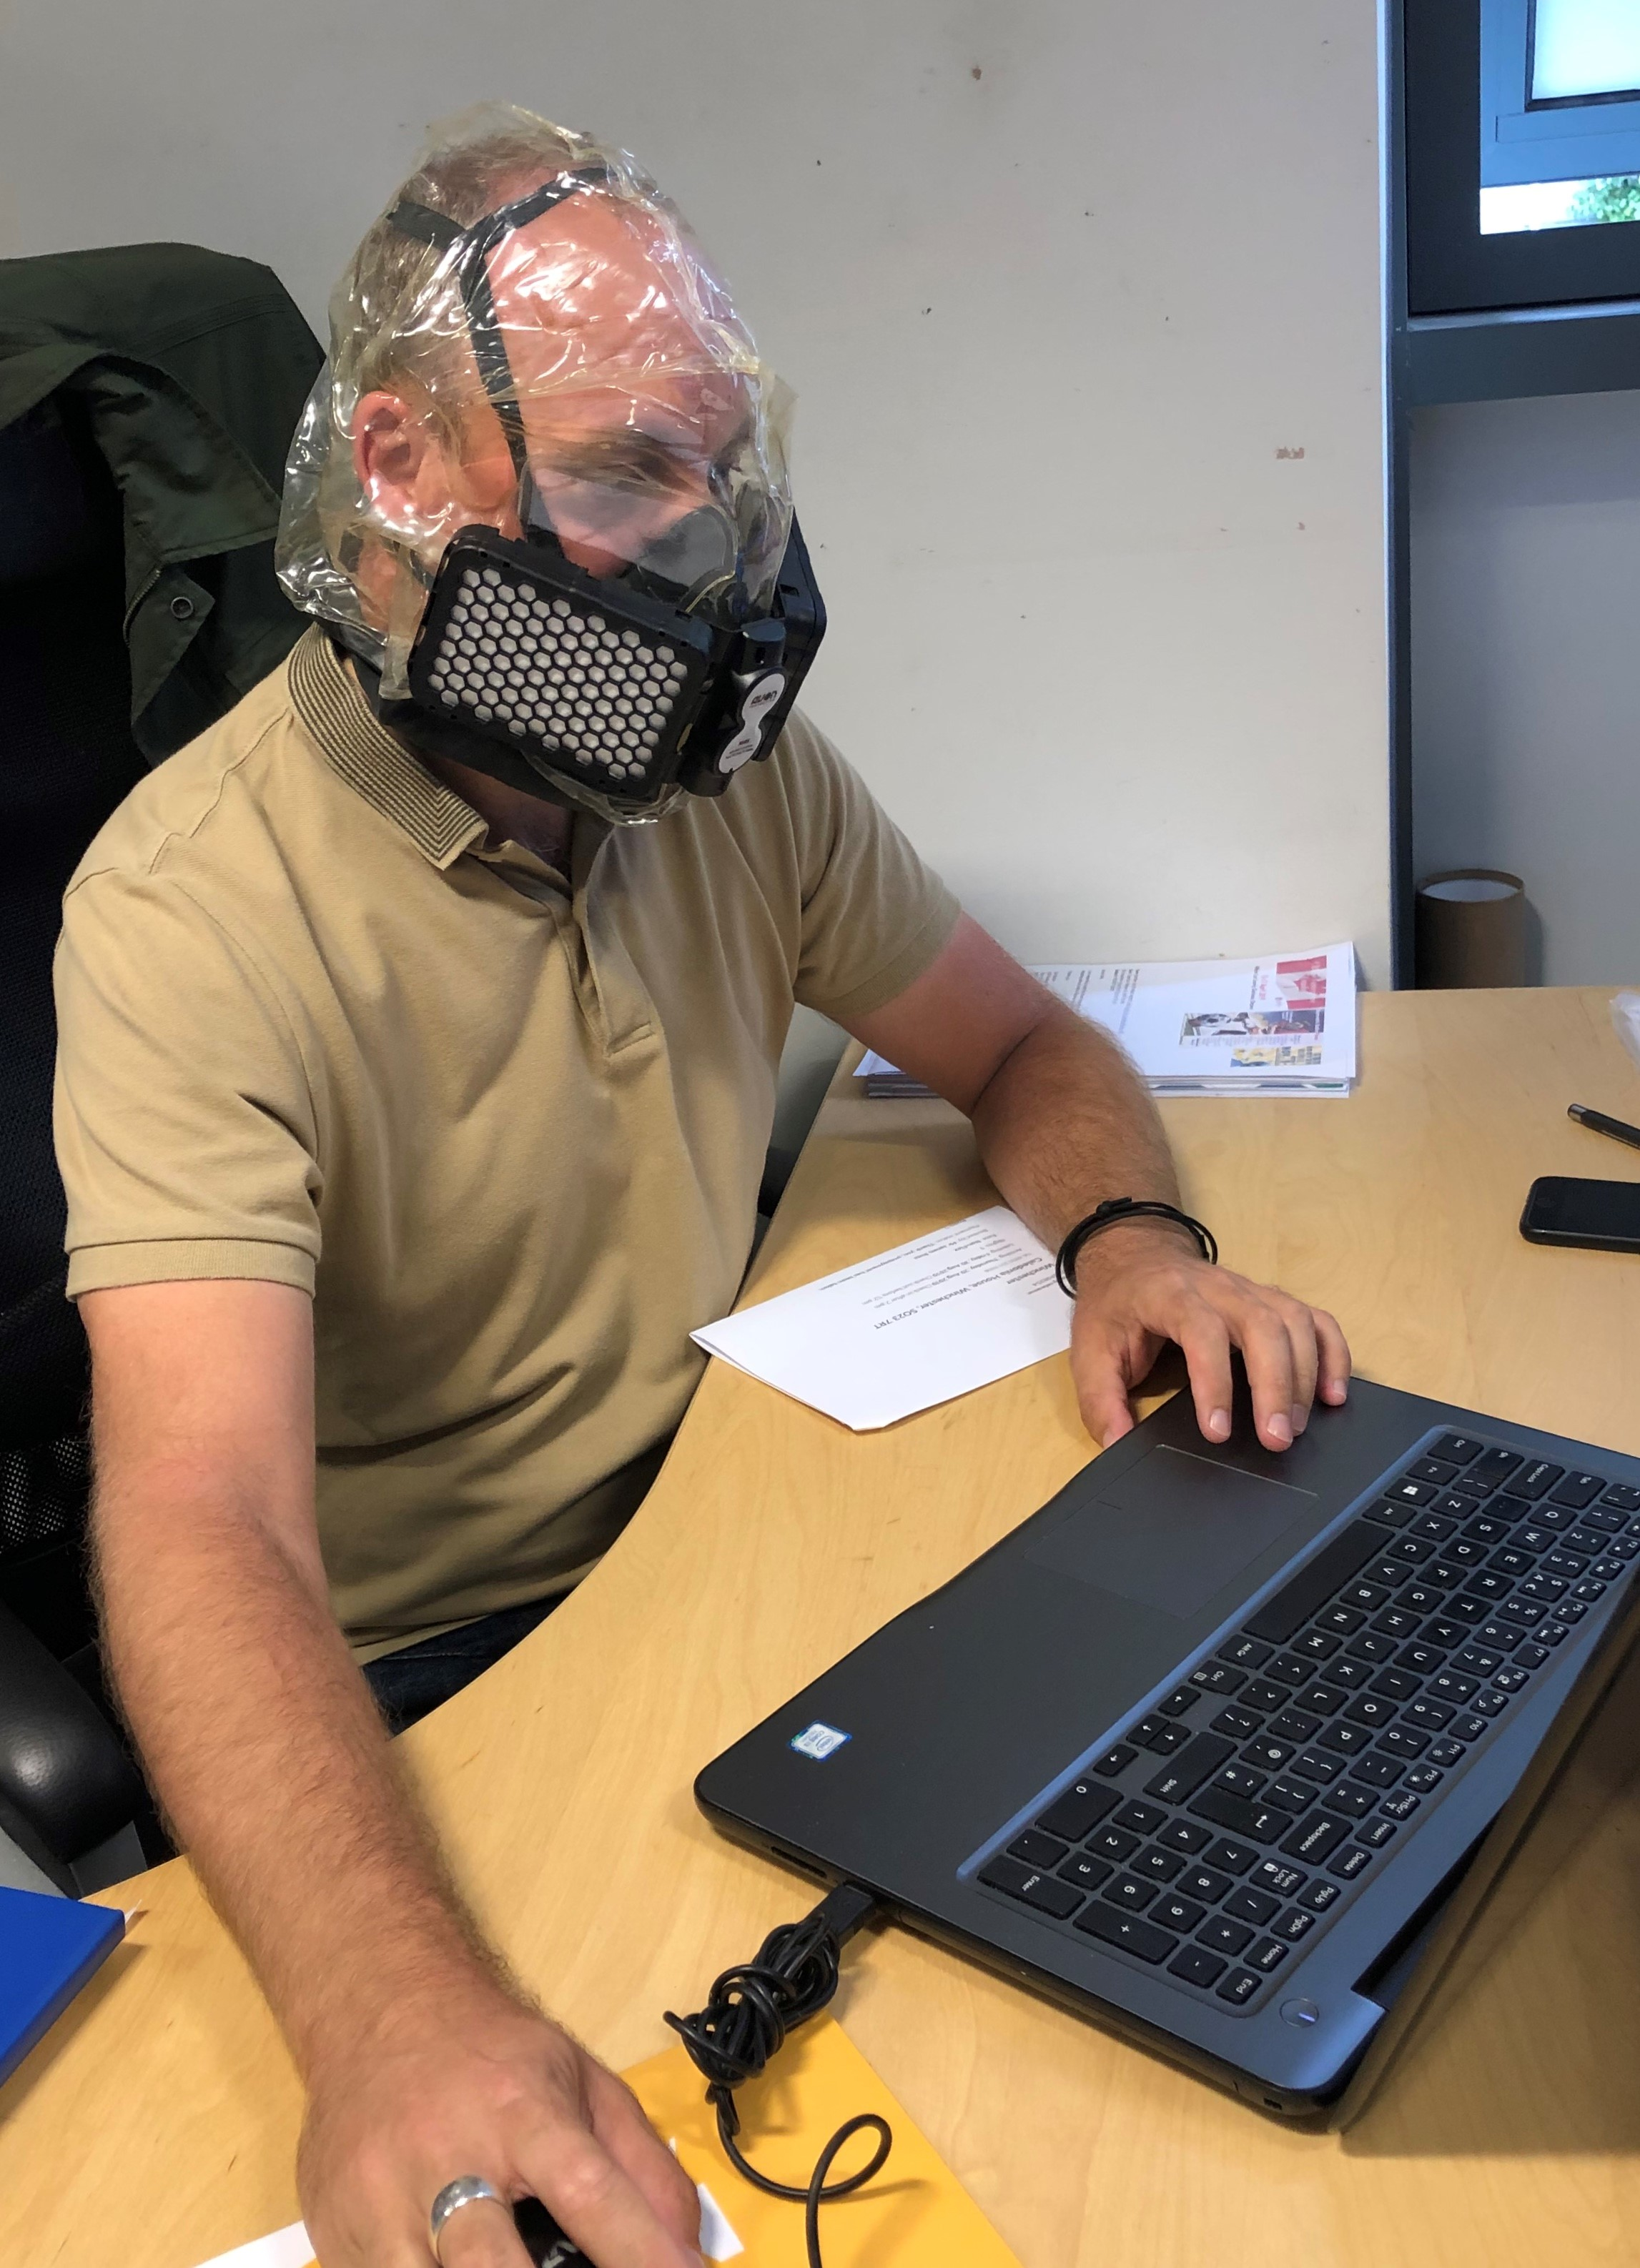 DHS S&T Announces Finalists in $250K Escape Respirator Challenge